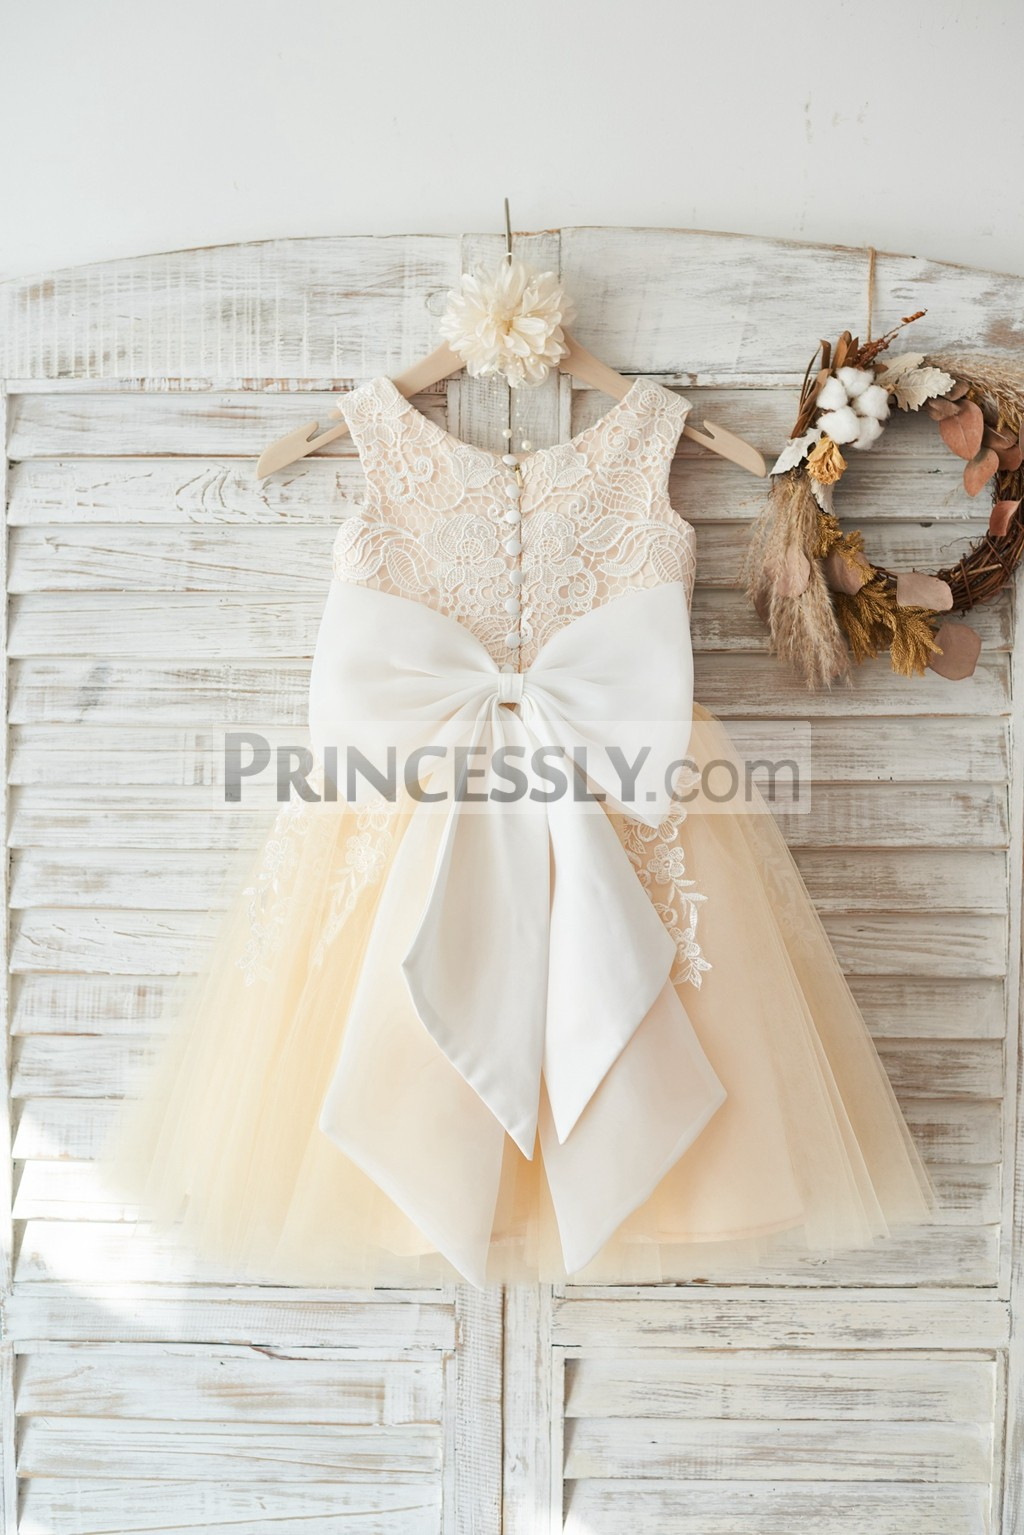 Lace tulle wedding baby girl dress with big bow and buttons